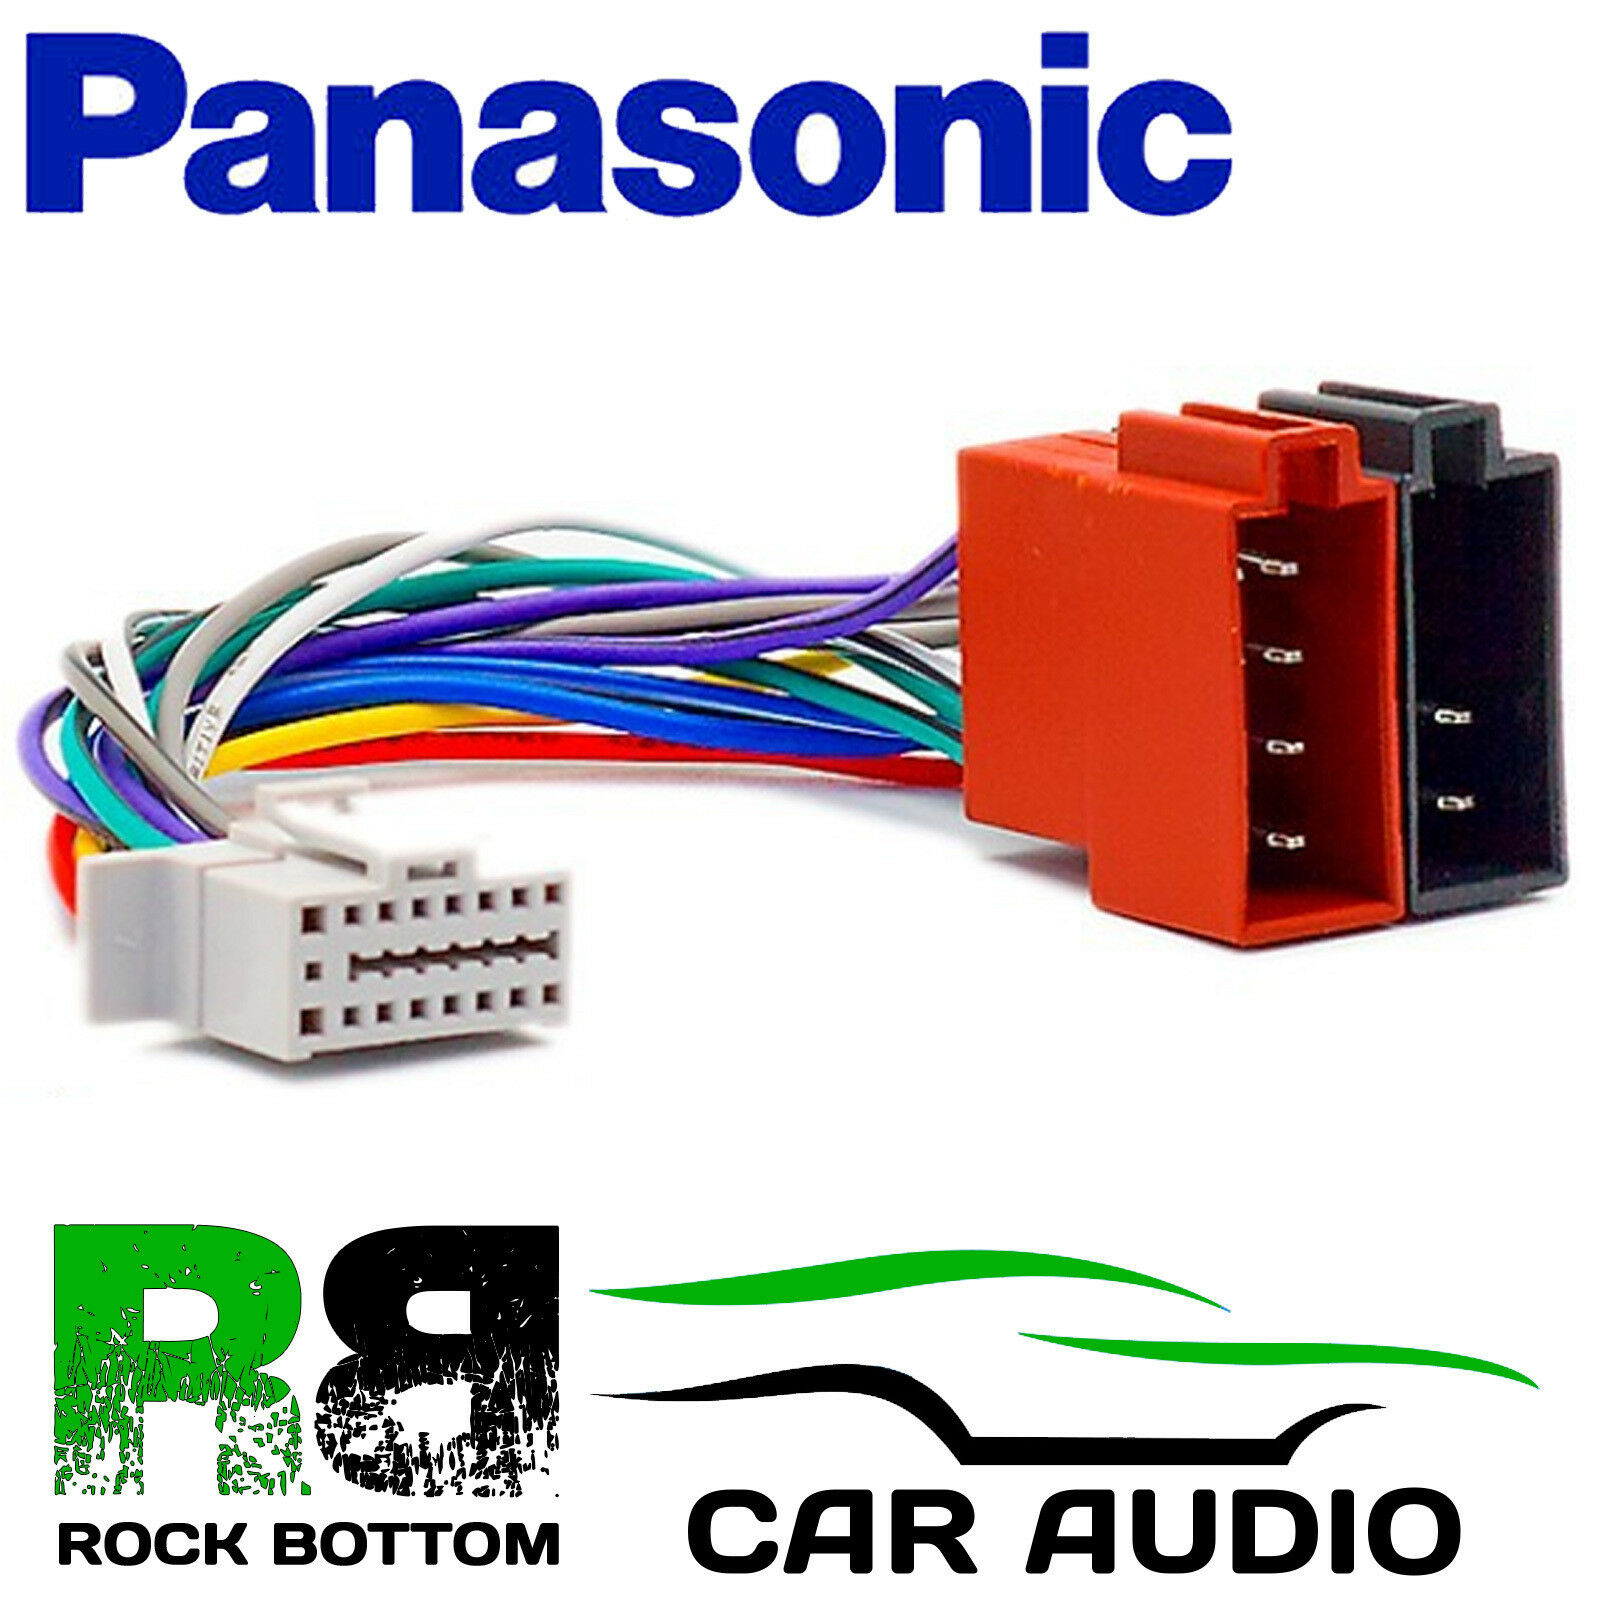 Panasonic Cq C1311 Nw Model 16 Pin Car Stereo Radio Iso Wiring Harness Lead 1 Of 1only 5 Available See More